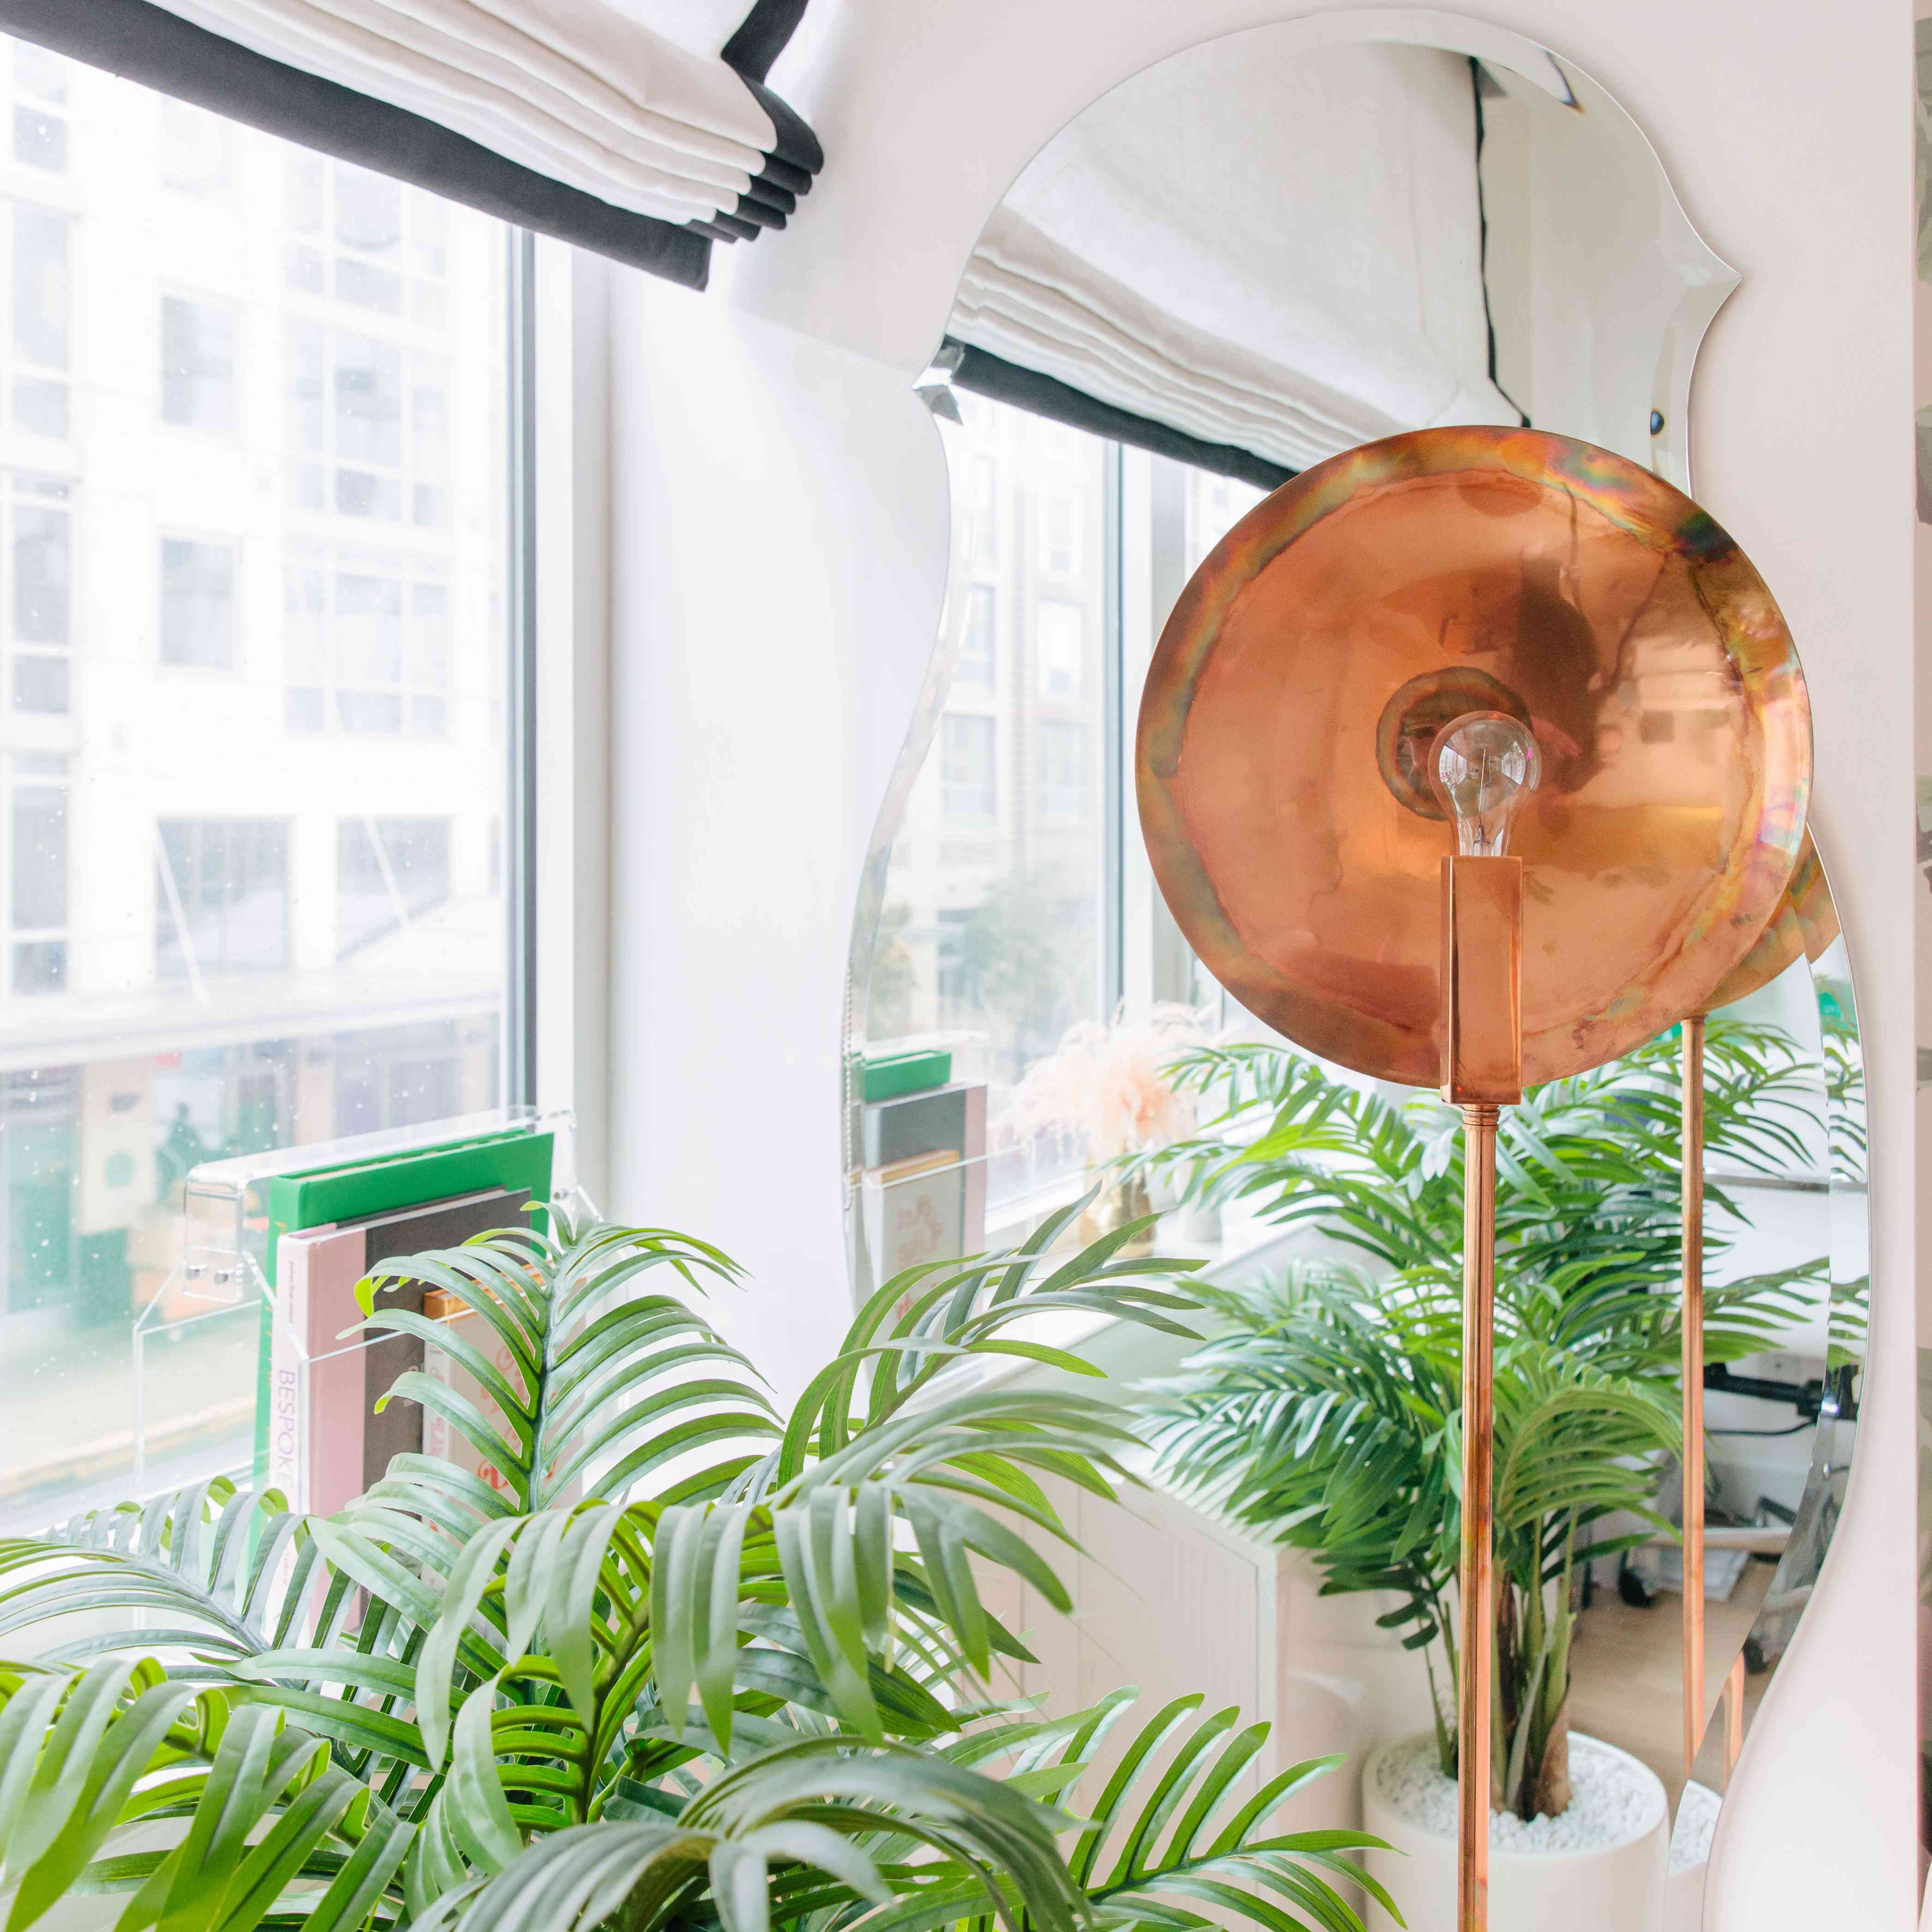 Bronze lamp next to potted palm tree.